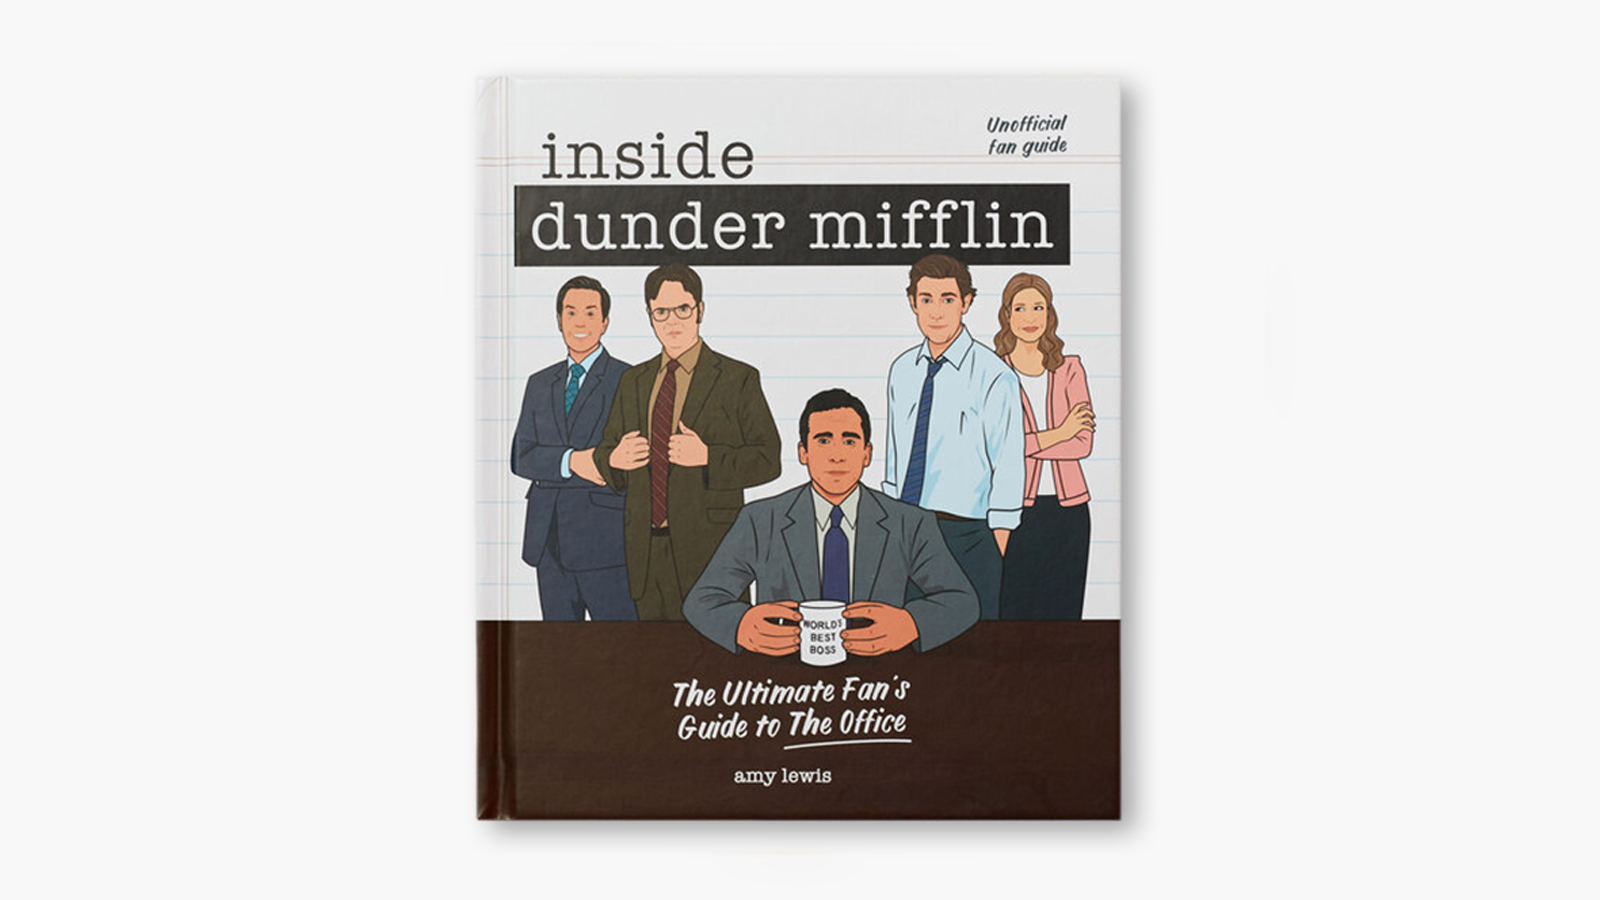 'Inside Dunder Mifflin' by Amy Lewis